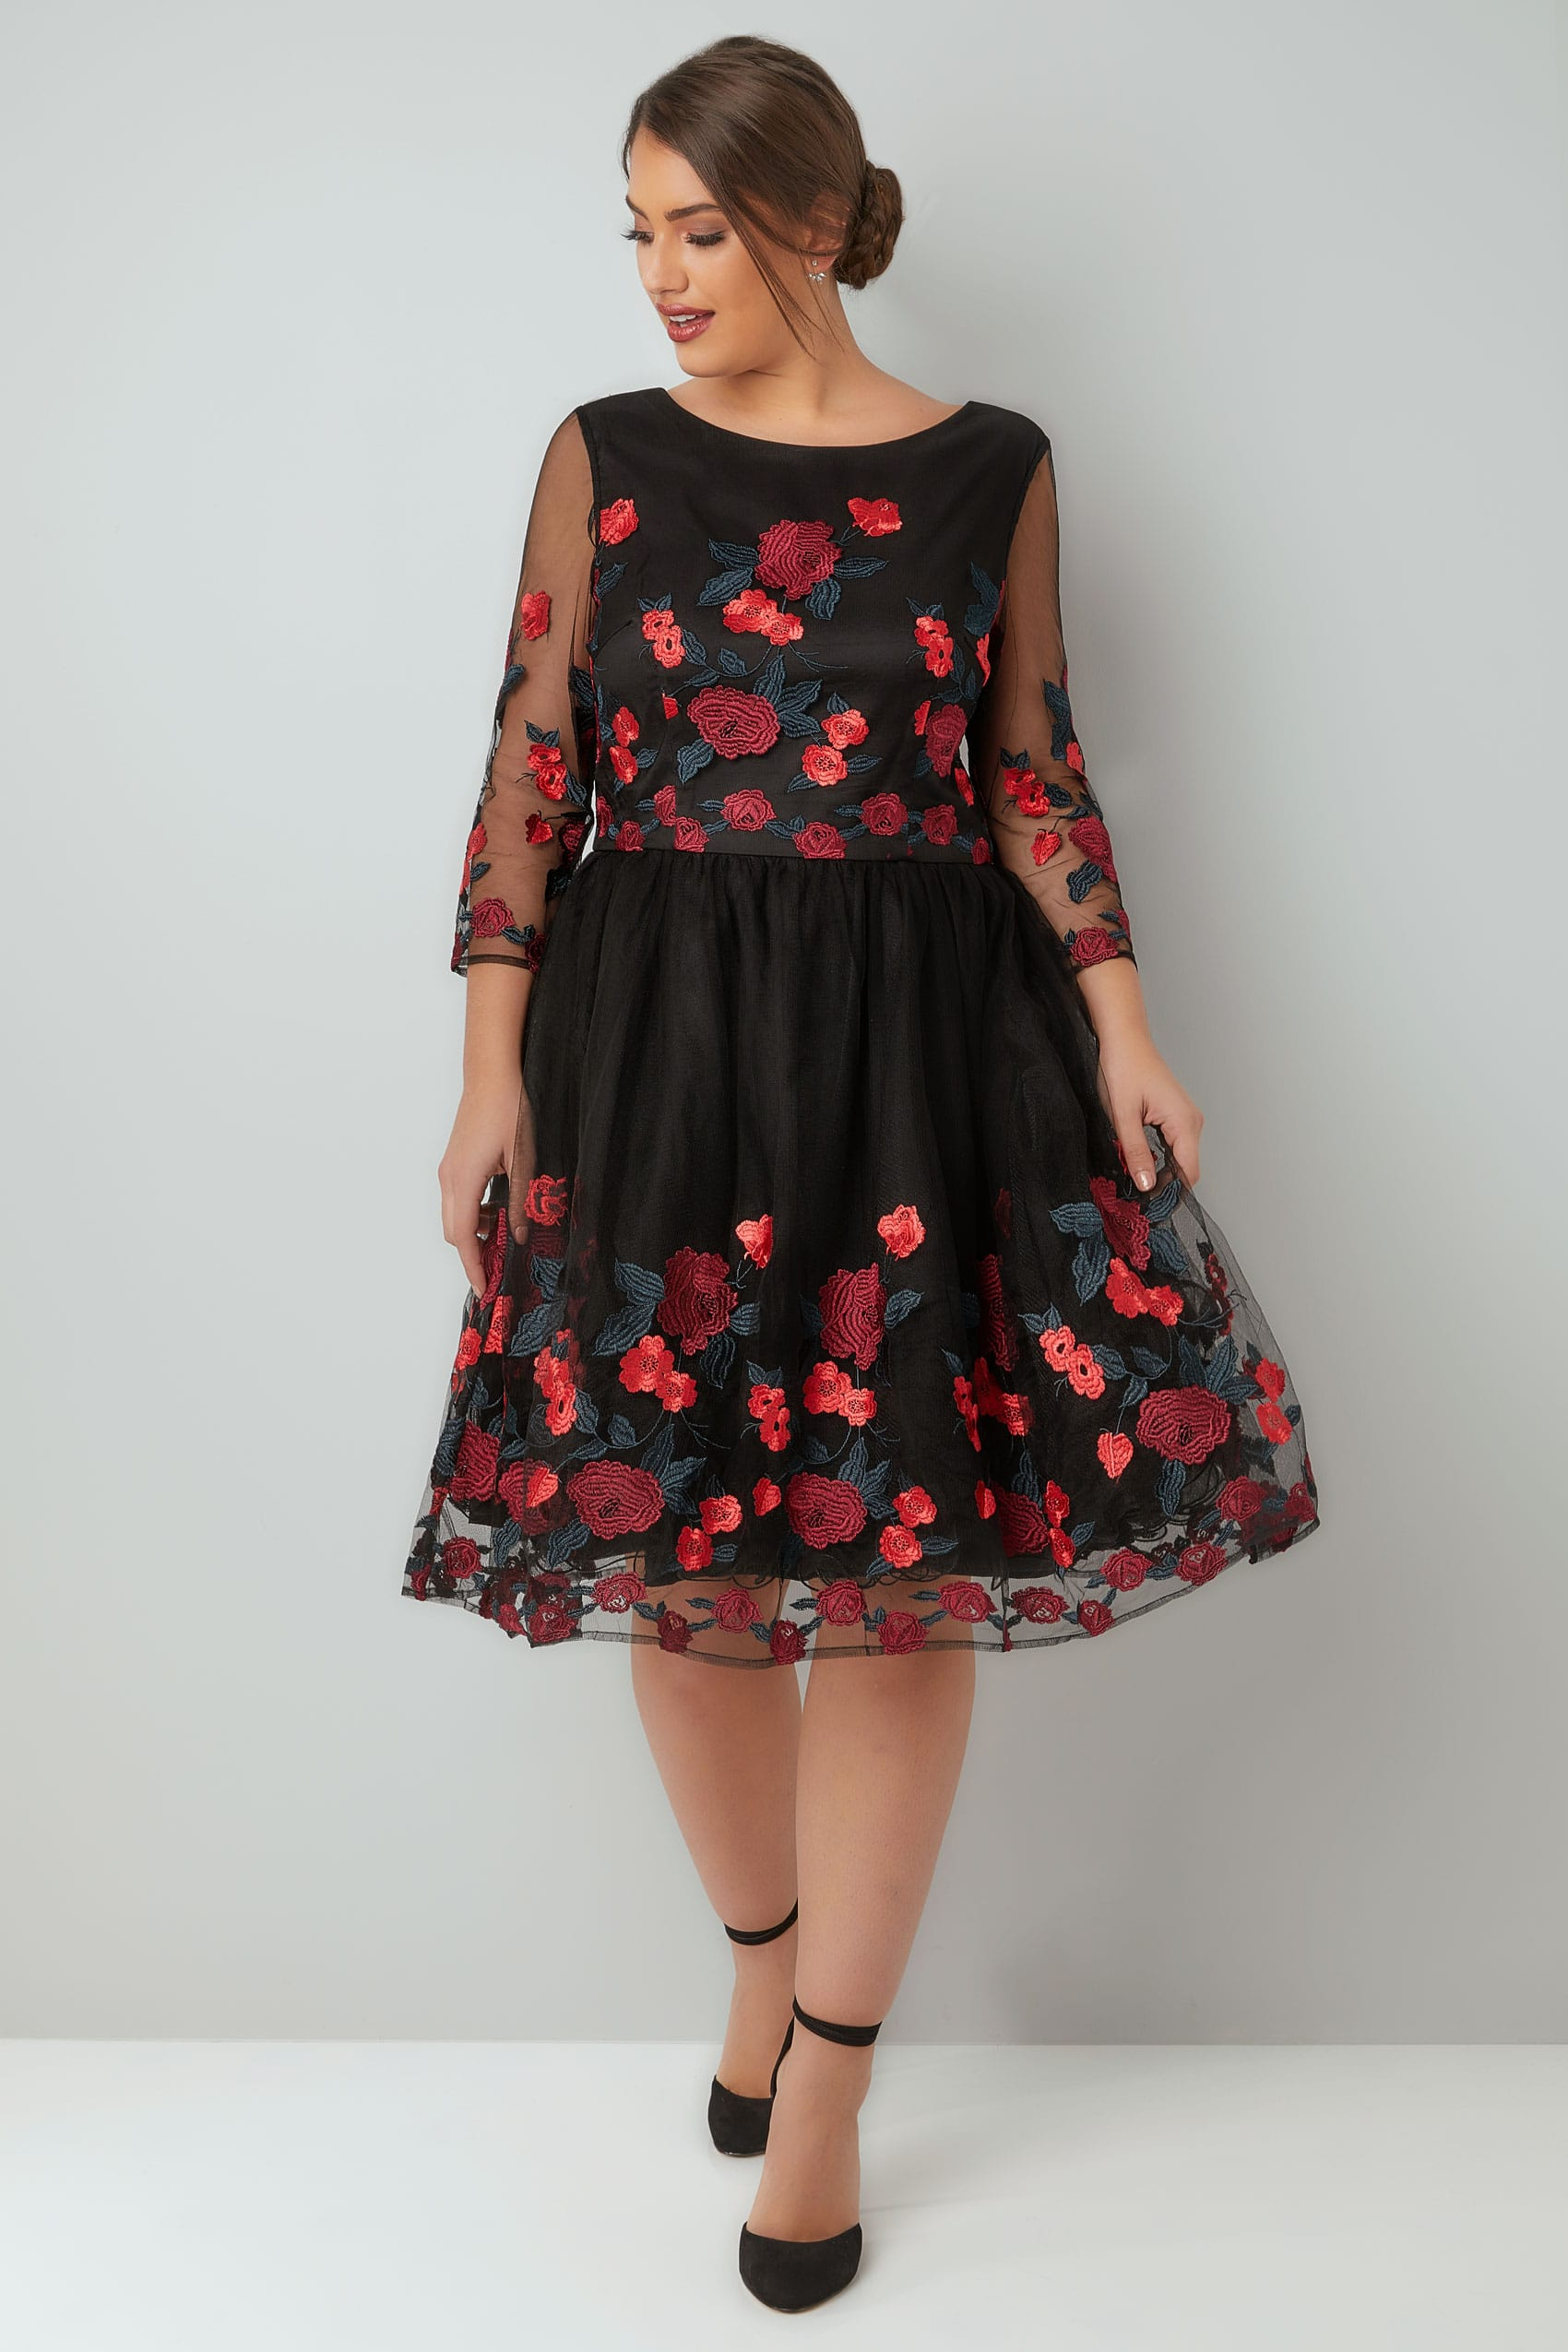 Chi black caitlyn rose embroidered dress with mesh